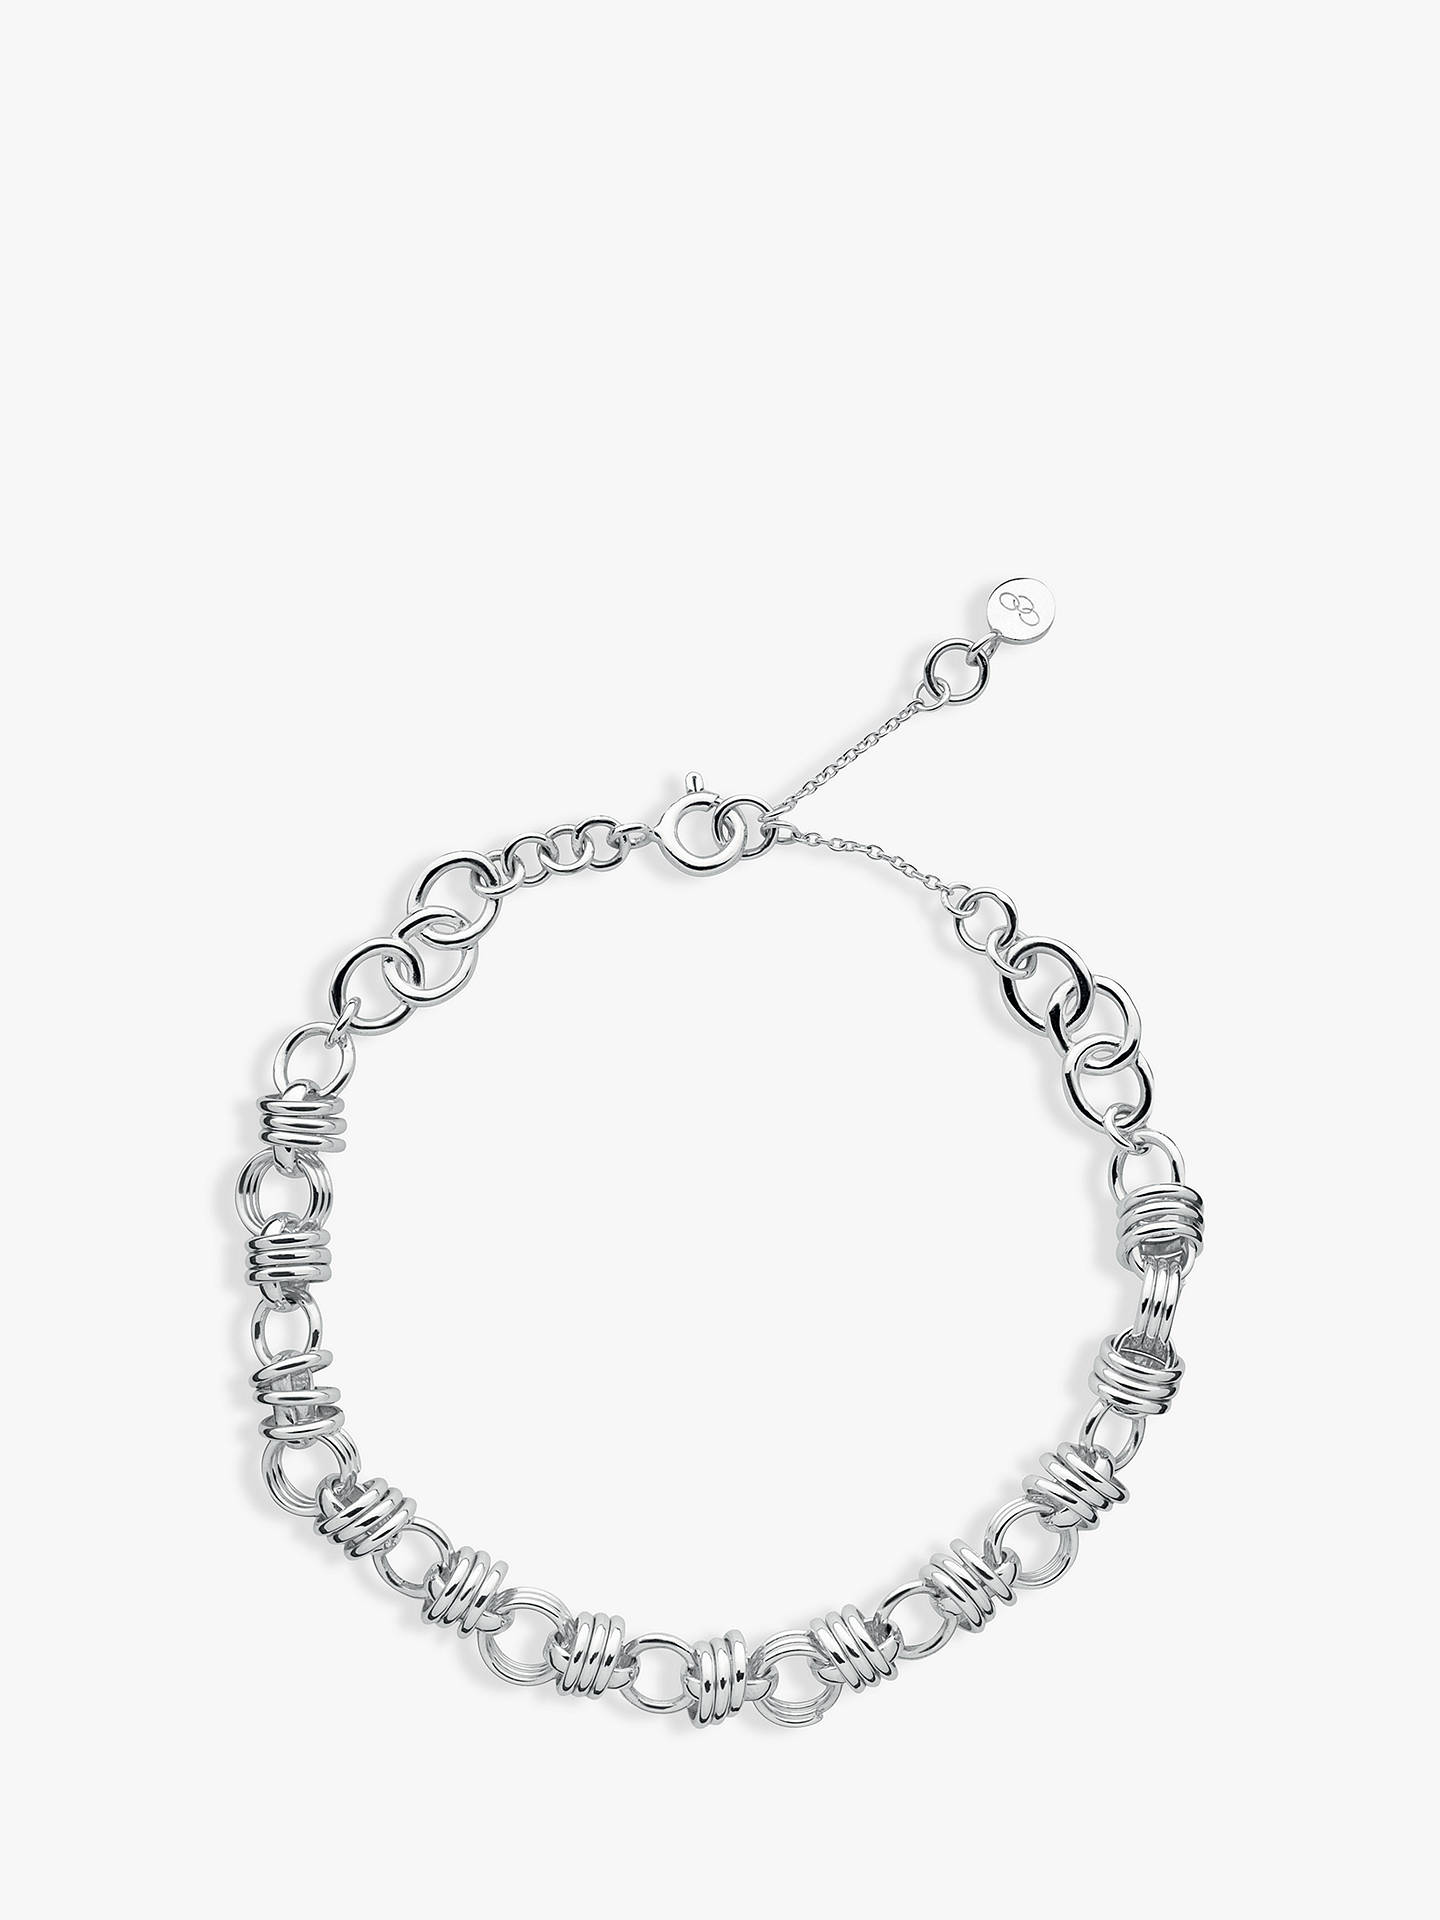 BuyLinks of London Sweetie XS Sterling Silver Chain Charm Bracelet, Silver Online at johnlewis.com